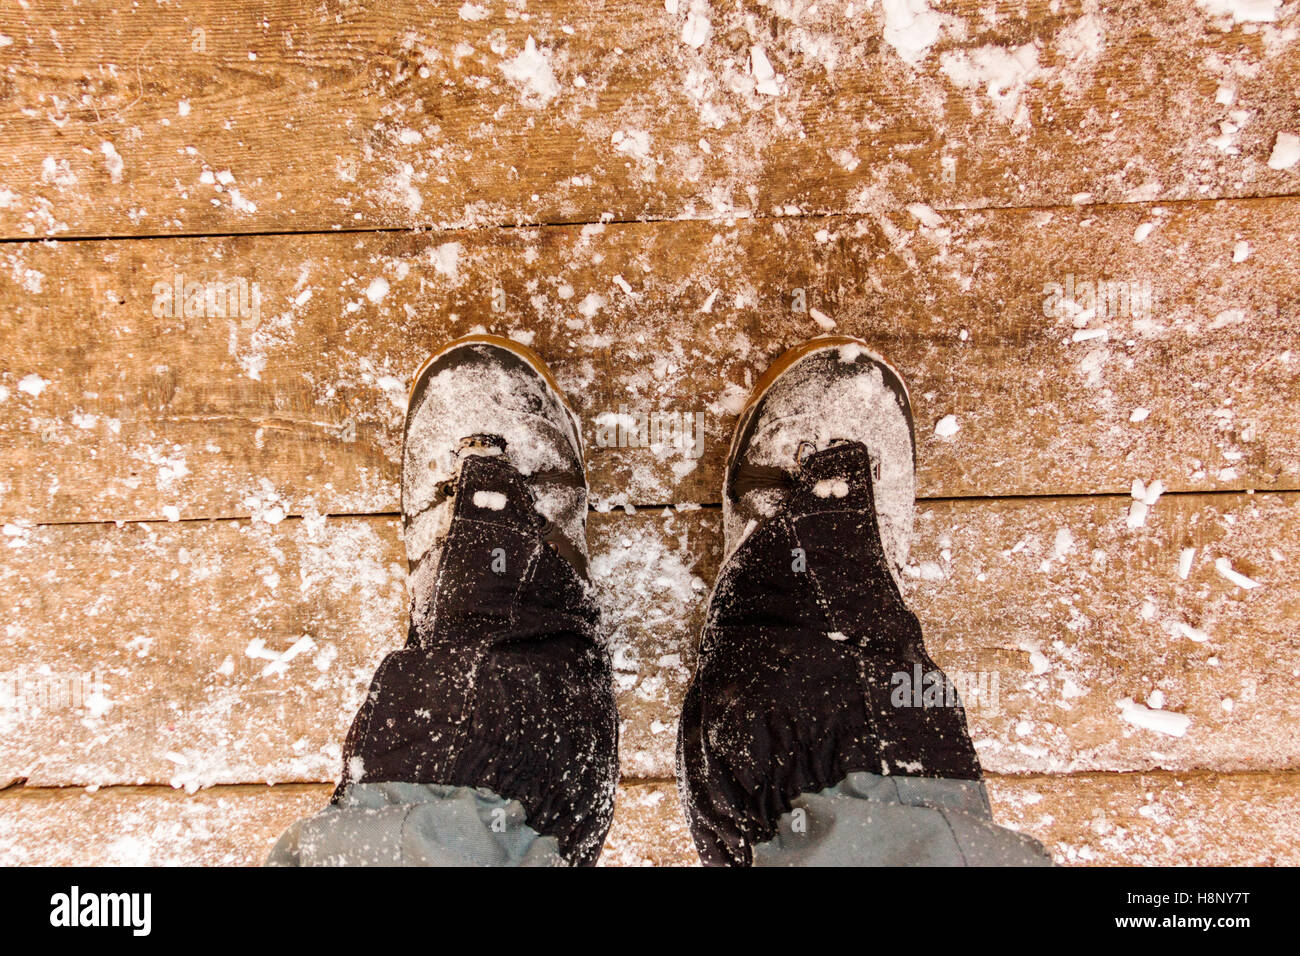 Top view of feet in boots and gaiters snow protection in the snow on the wooden floor. - Stock Image